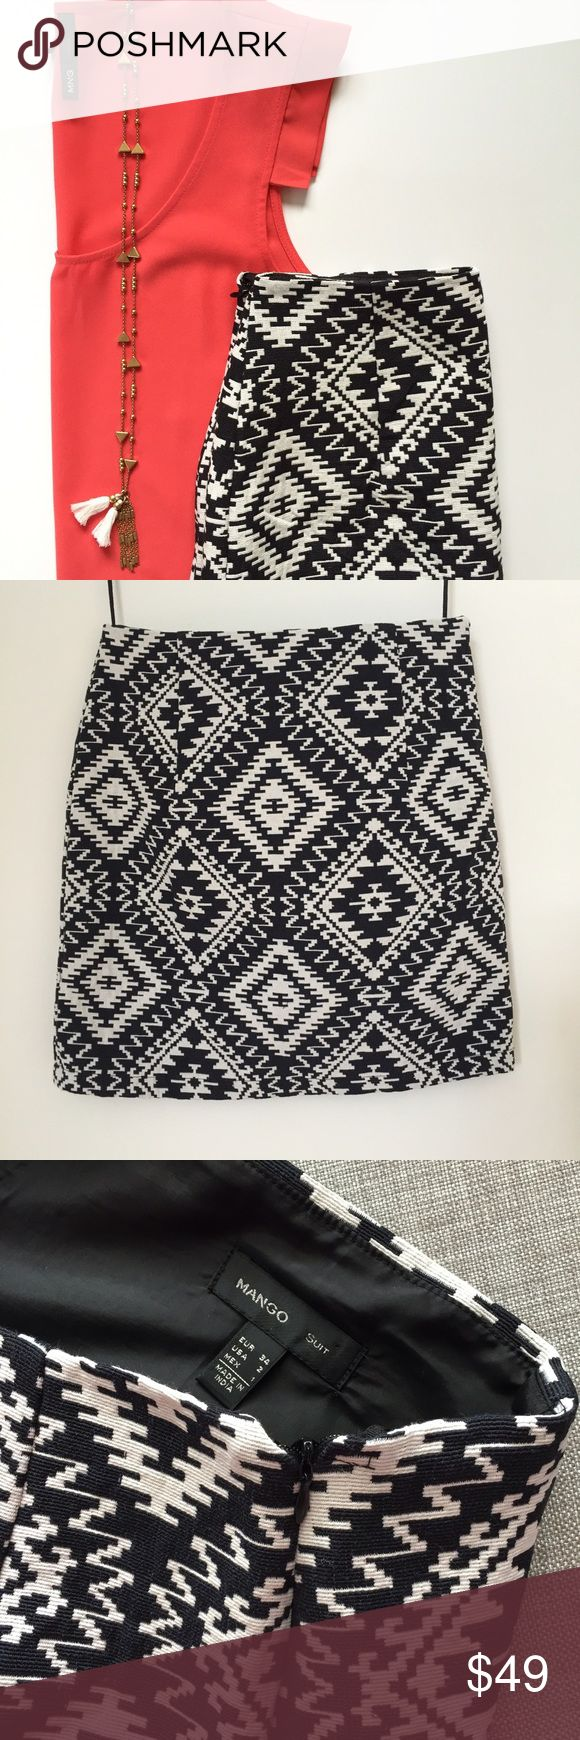 """🆕 Mango Aztec Skirt BRAND NEW Mango Skirt. Textured Aztec design with front and back pleats. Black and white. Fully lined. Hidden side zipper. 47% cotton, 42% Polyester, 7% Viscose, 2% Acrylic, 2% Polyamide. Lining 100% Polyester. Waist 13.5"""", length 17"""". Bought in Europe, excellent condition. Mango Skirts Mini"""